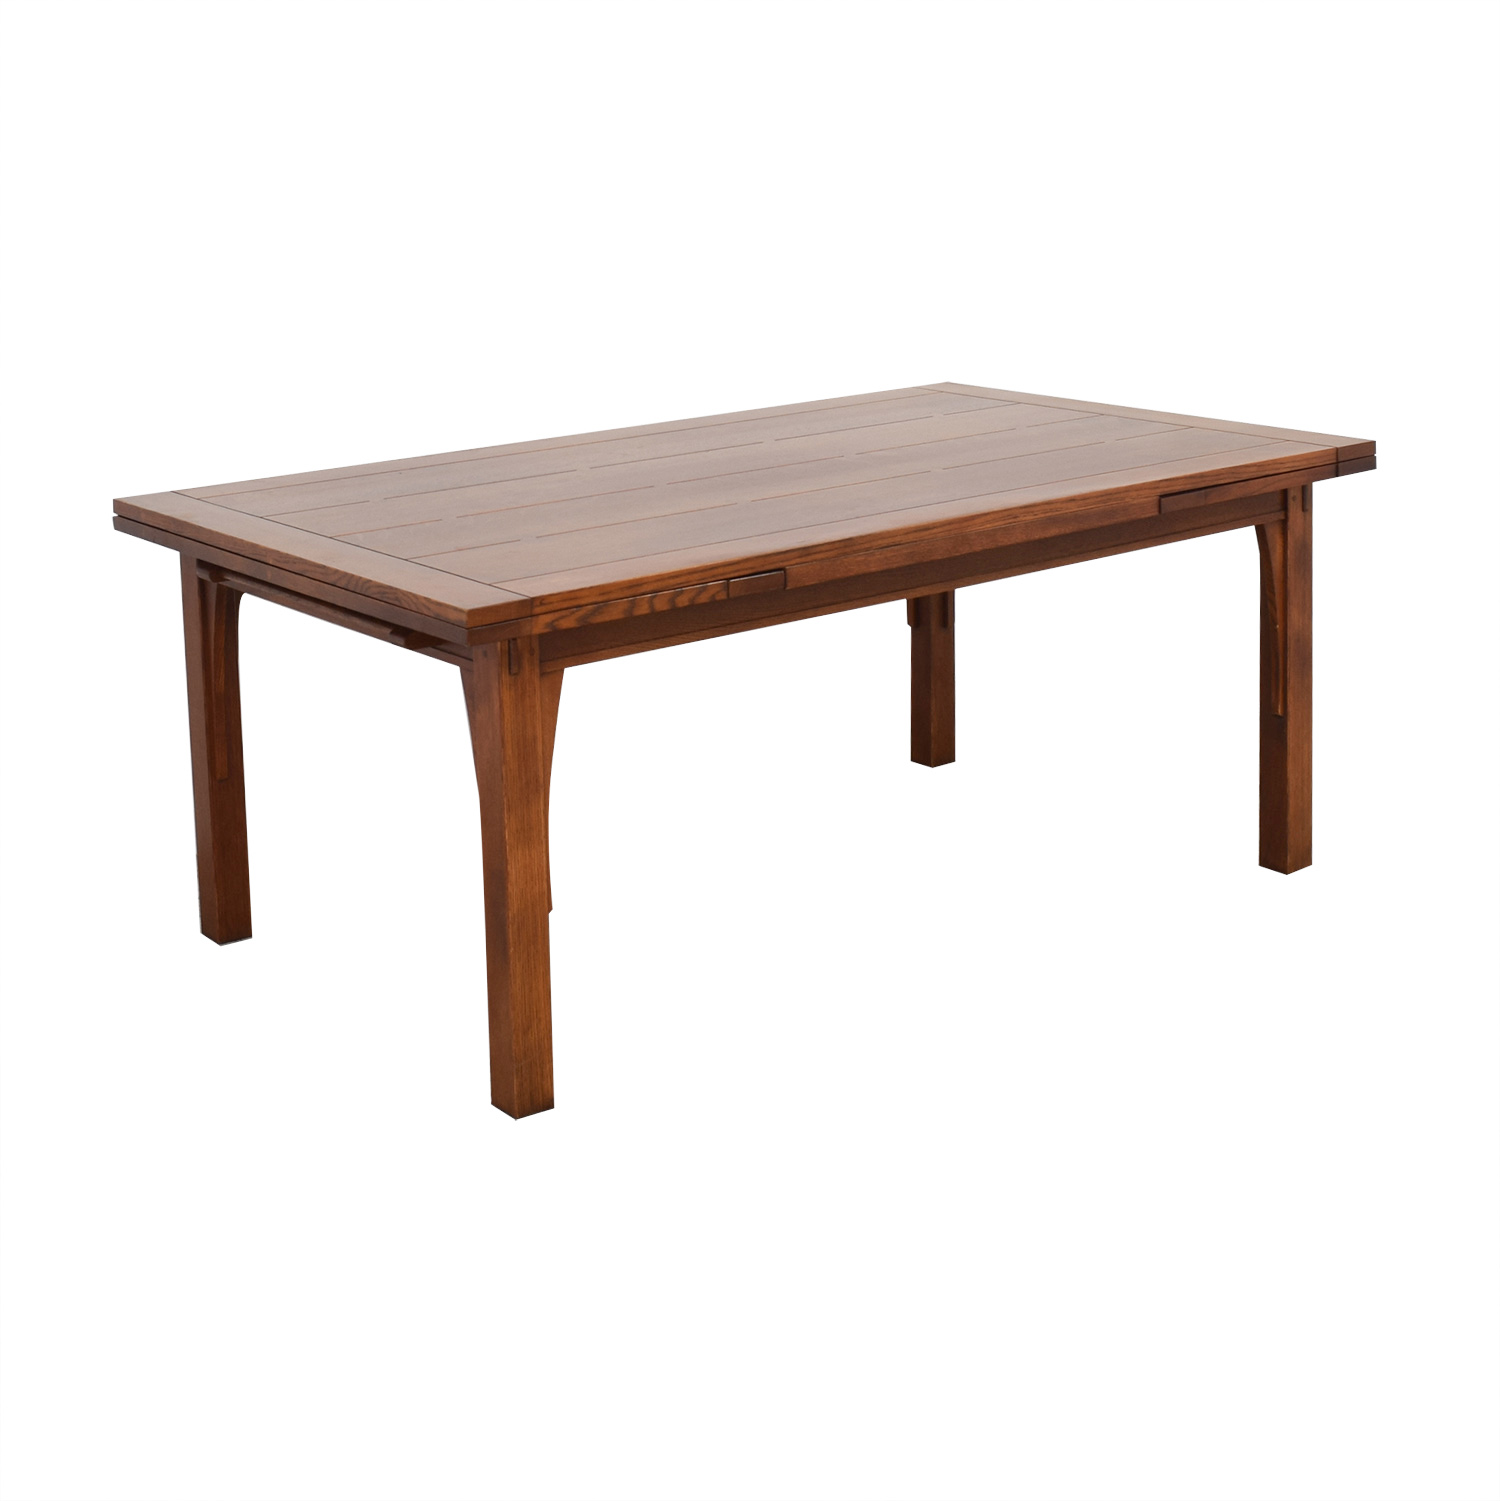 Stickley Furniture Stickley Mission Dining Table nyc